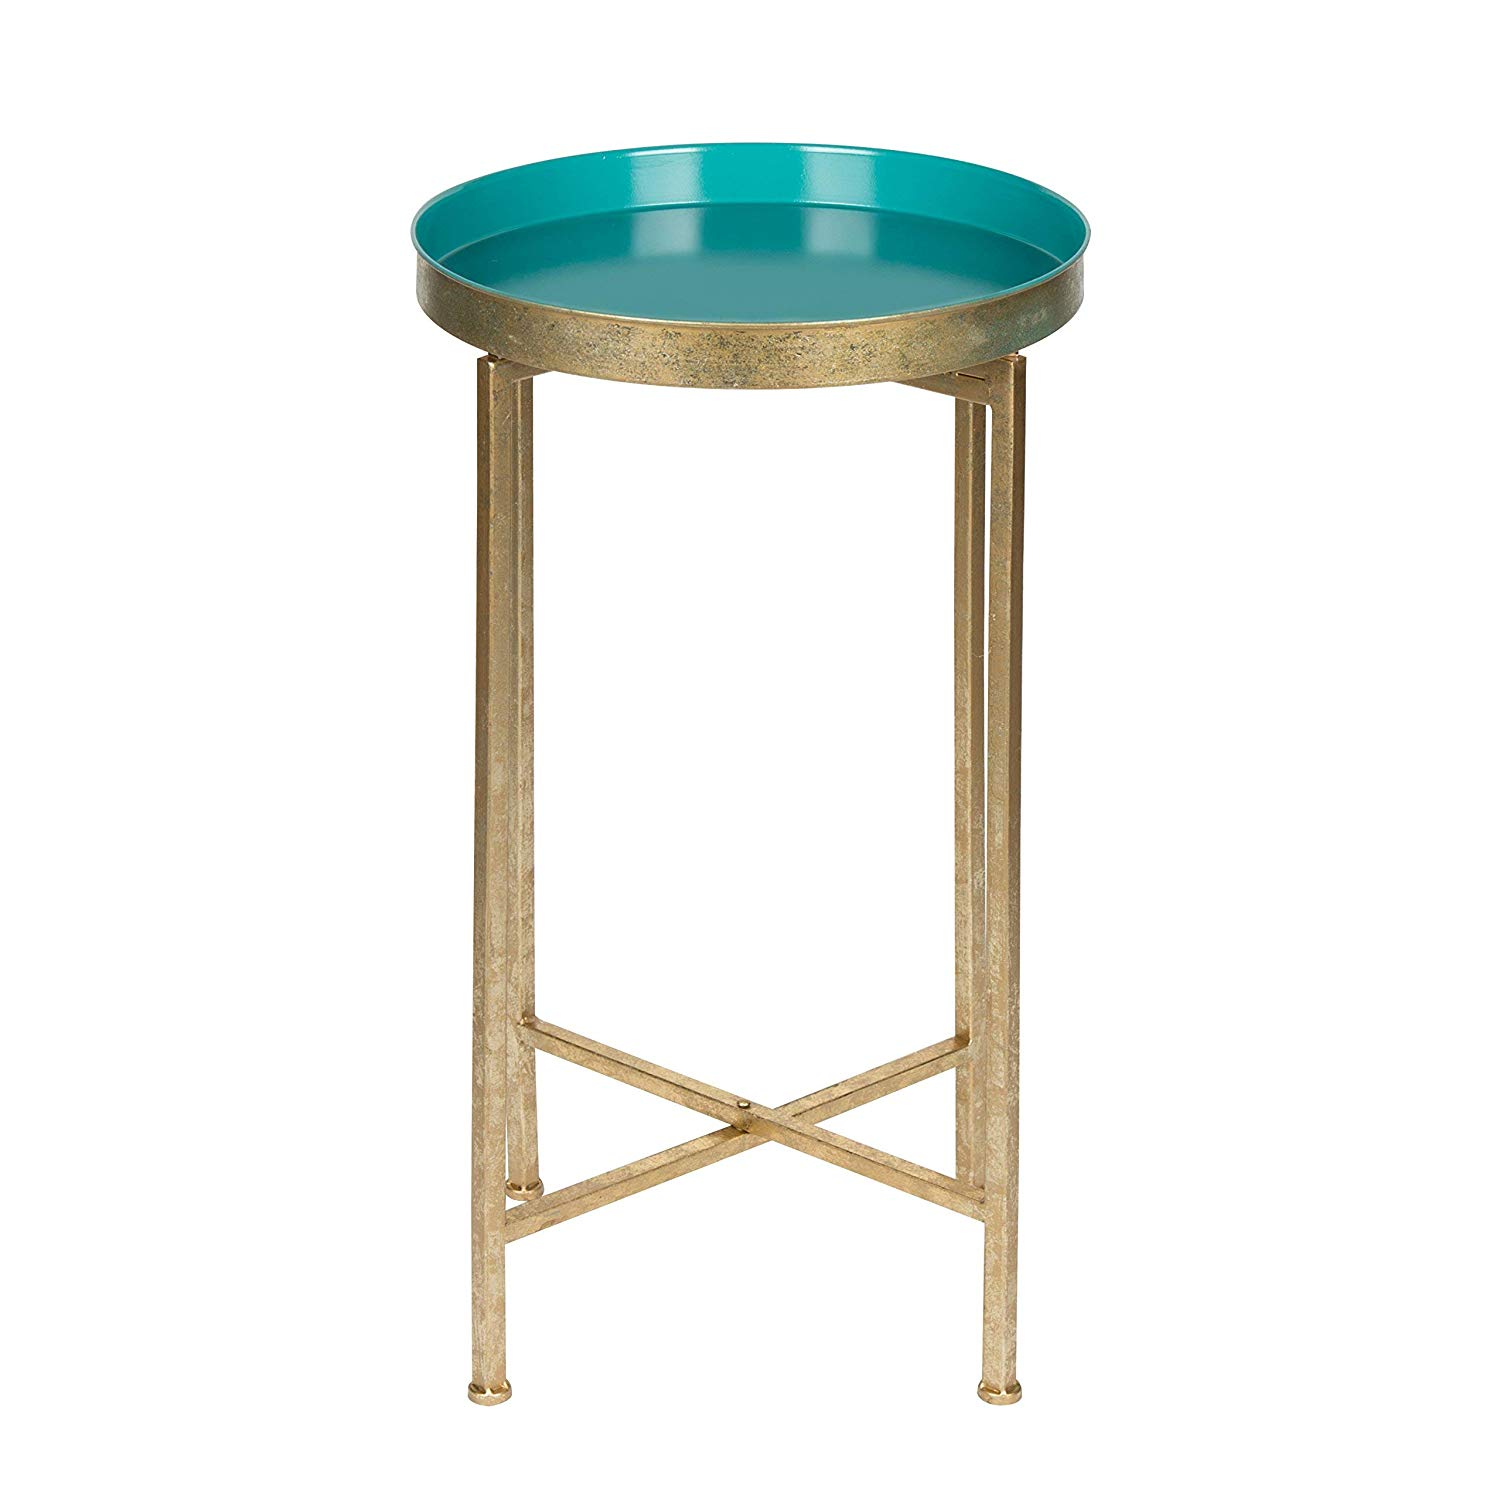 kate and laurel celia round metal foldable tray accent table teal gold kitchen dining distressed white coffee set rustic gray glass top end tables tread plates wooden door